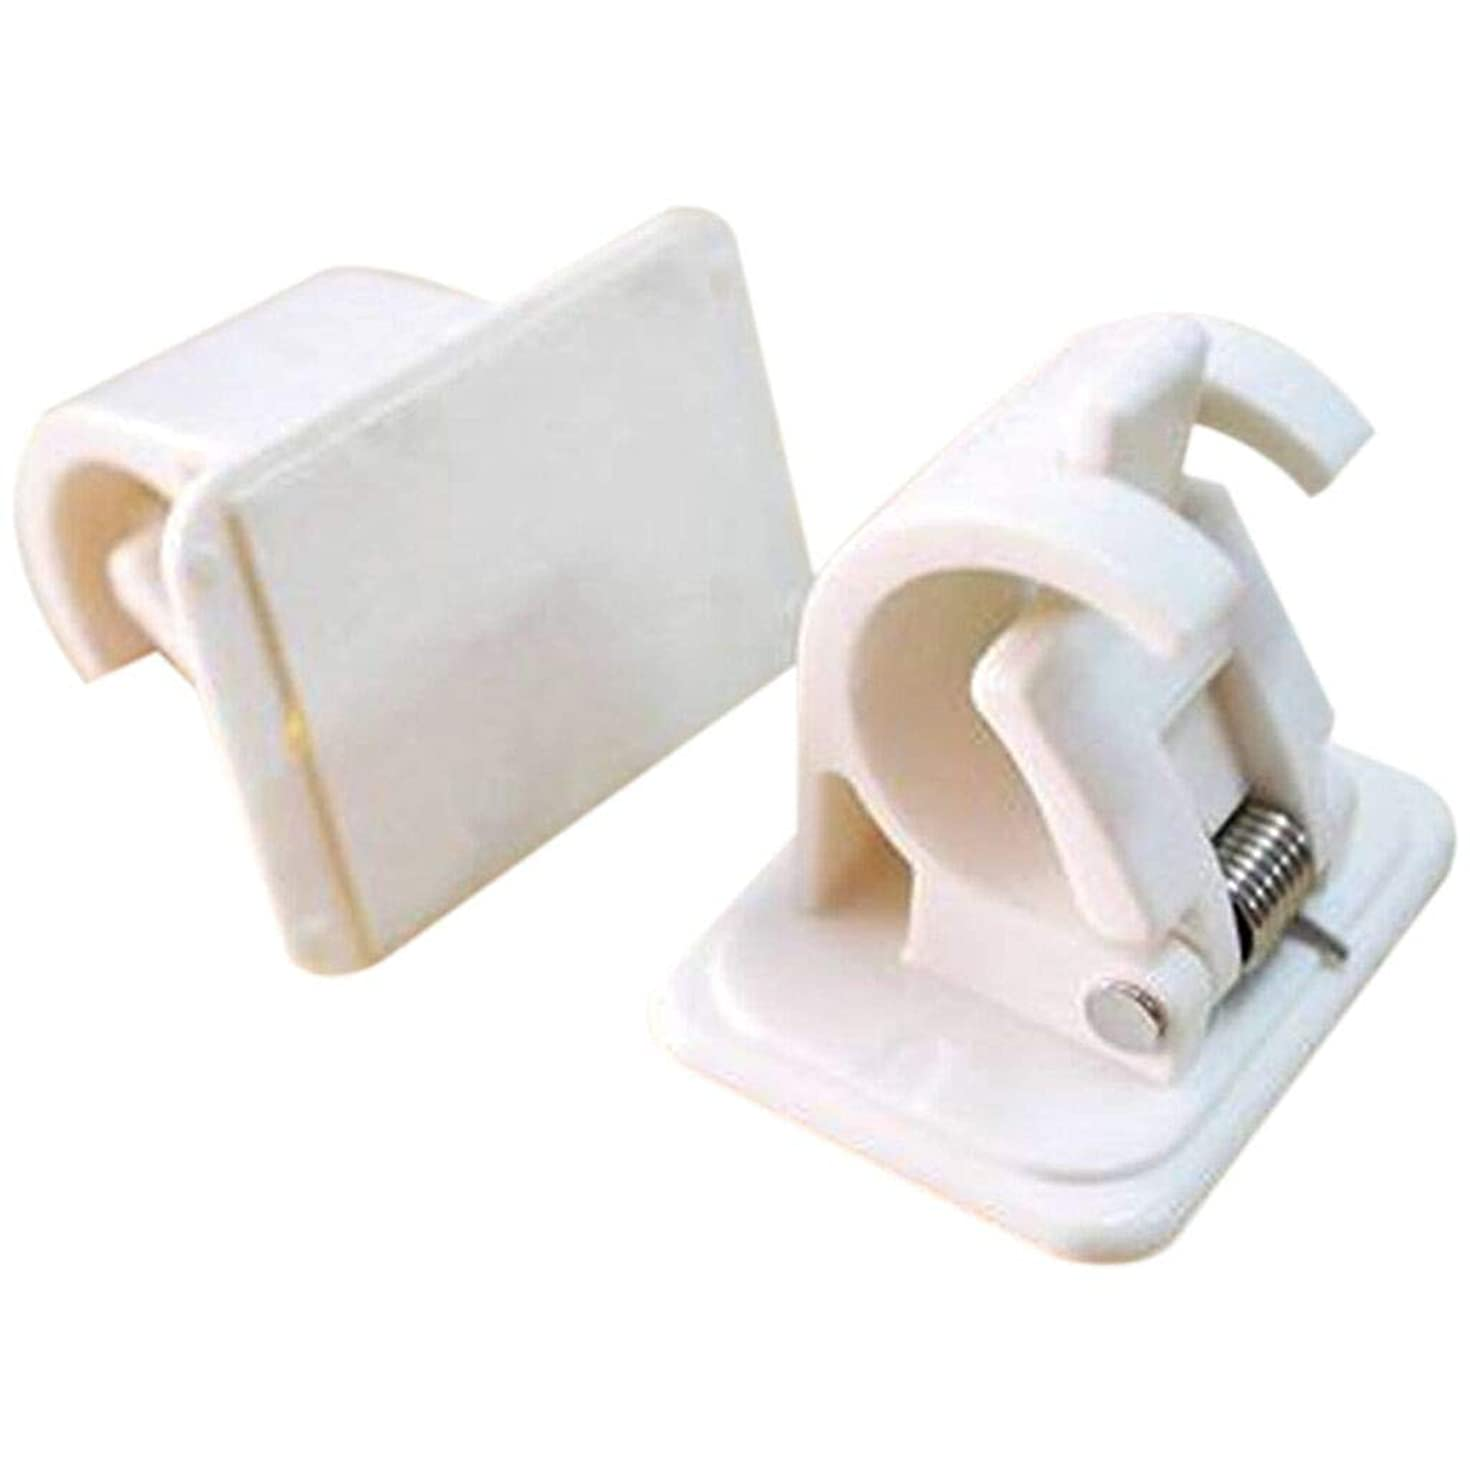 ??Ywoow?? Curtain Holders, Self Adhesive Hooks Rod Bracket Pole Drapery Hook Holders 2PC